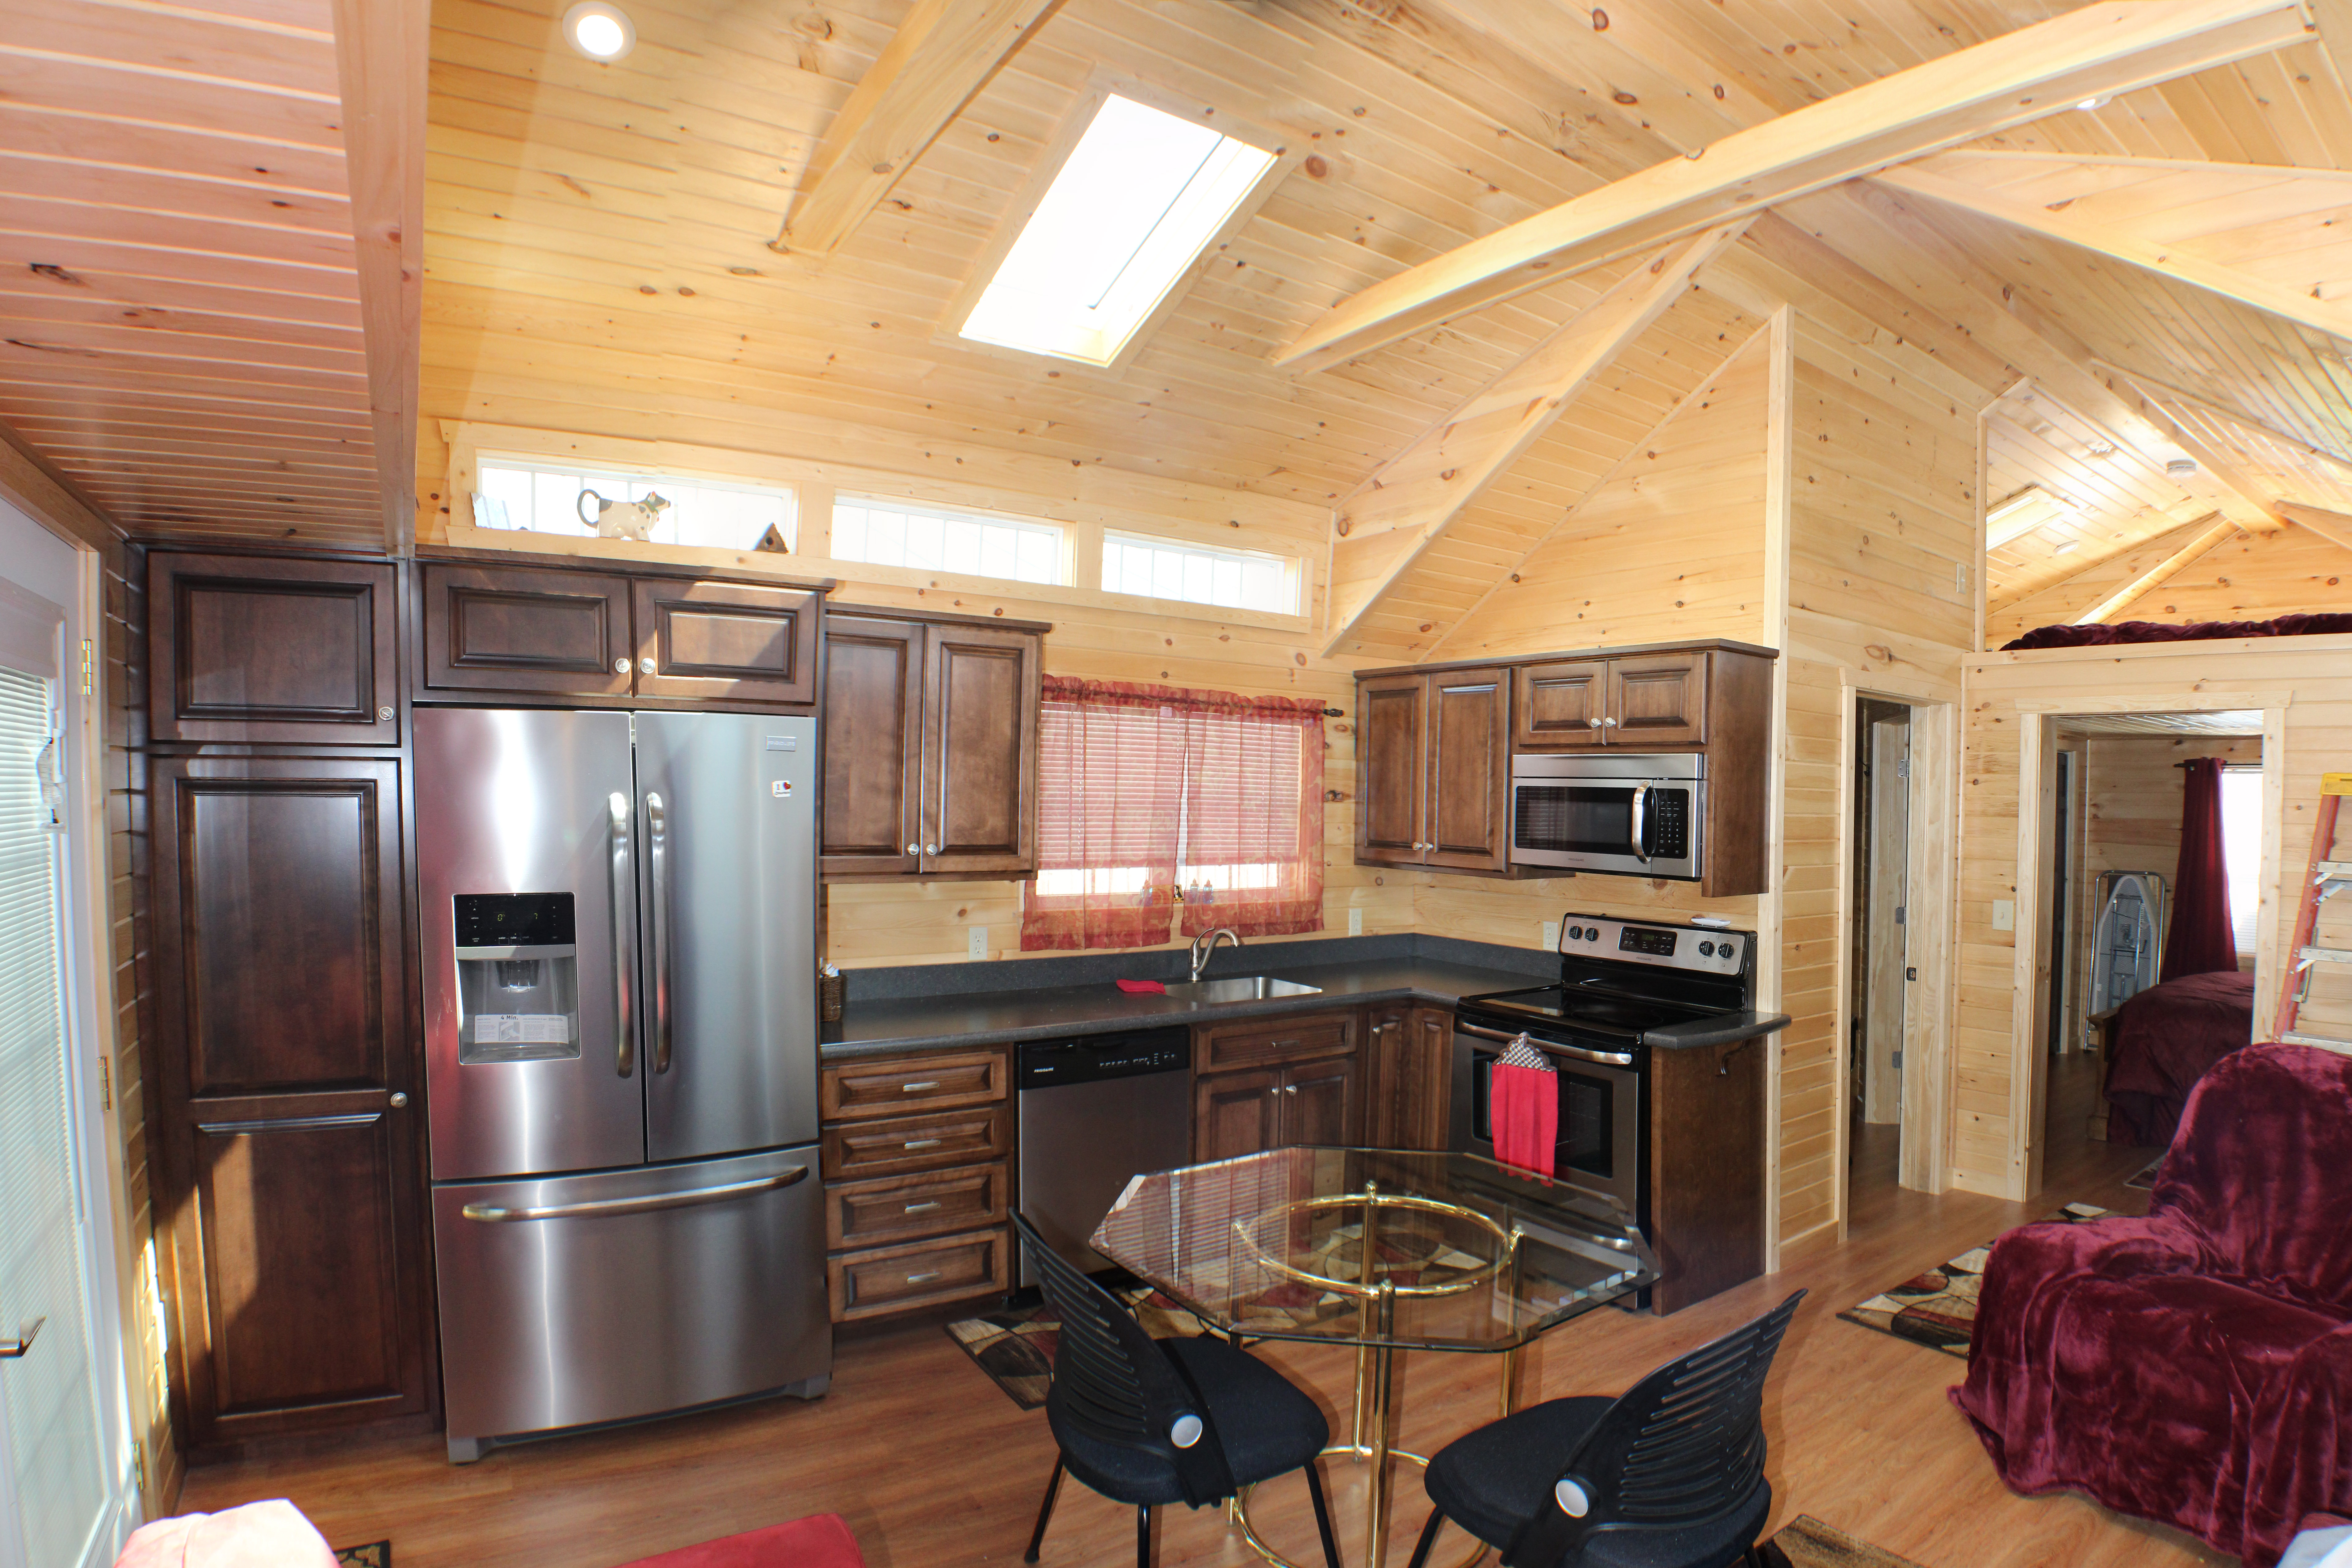 1 Bedroom Apartments Bloomington In Sheds Unlimited Releases Tiny House Designs In Pa